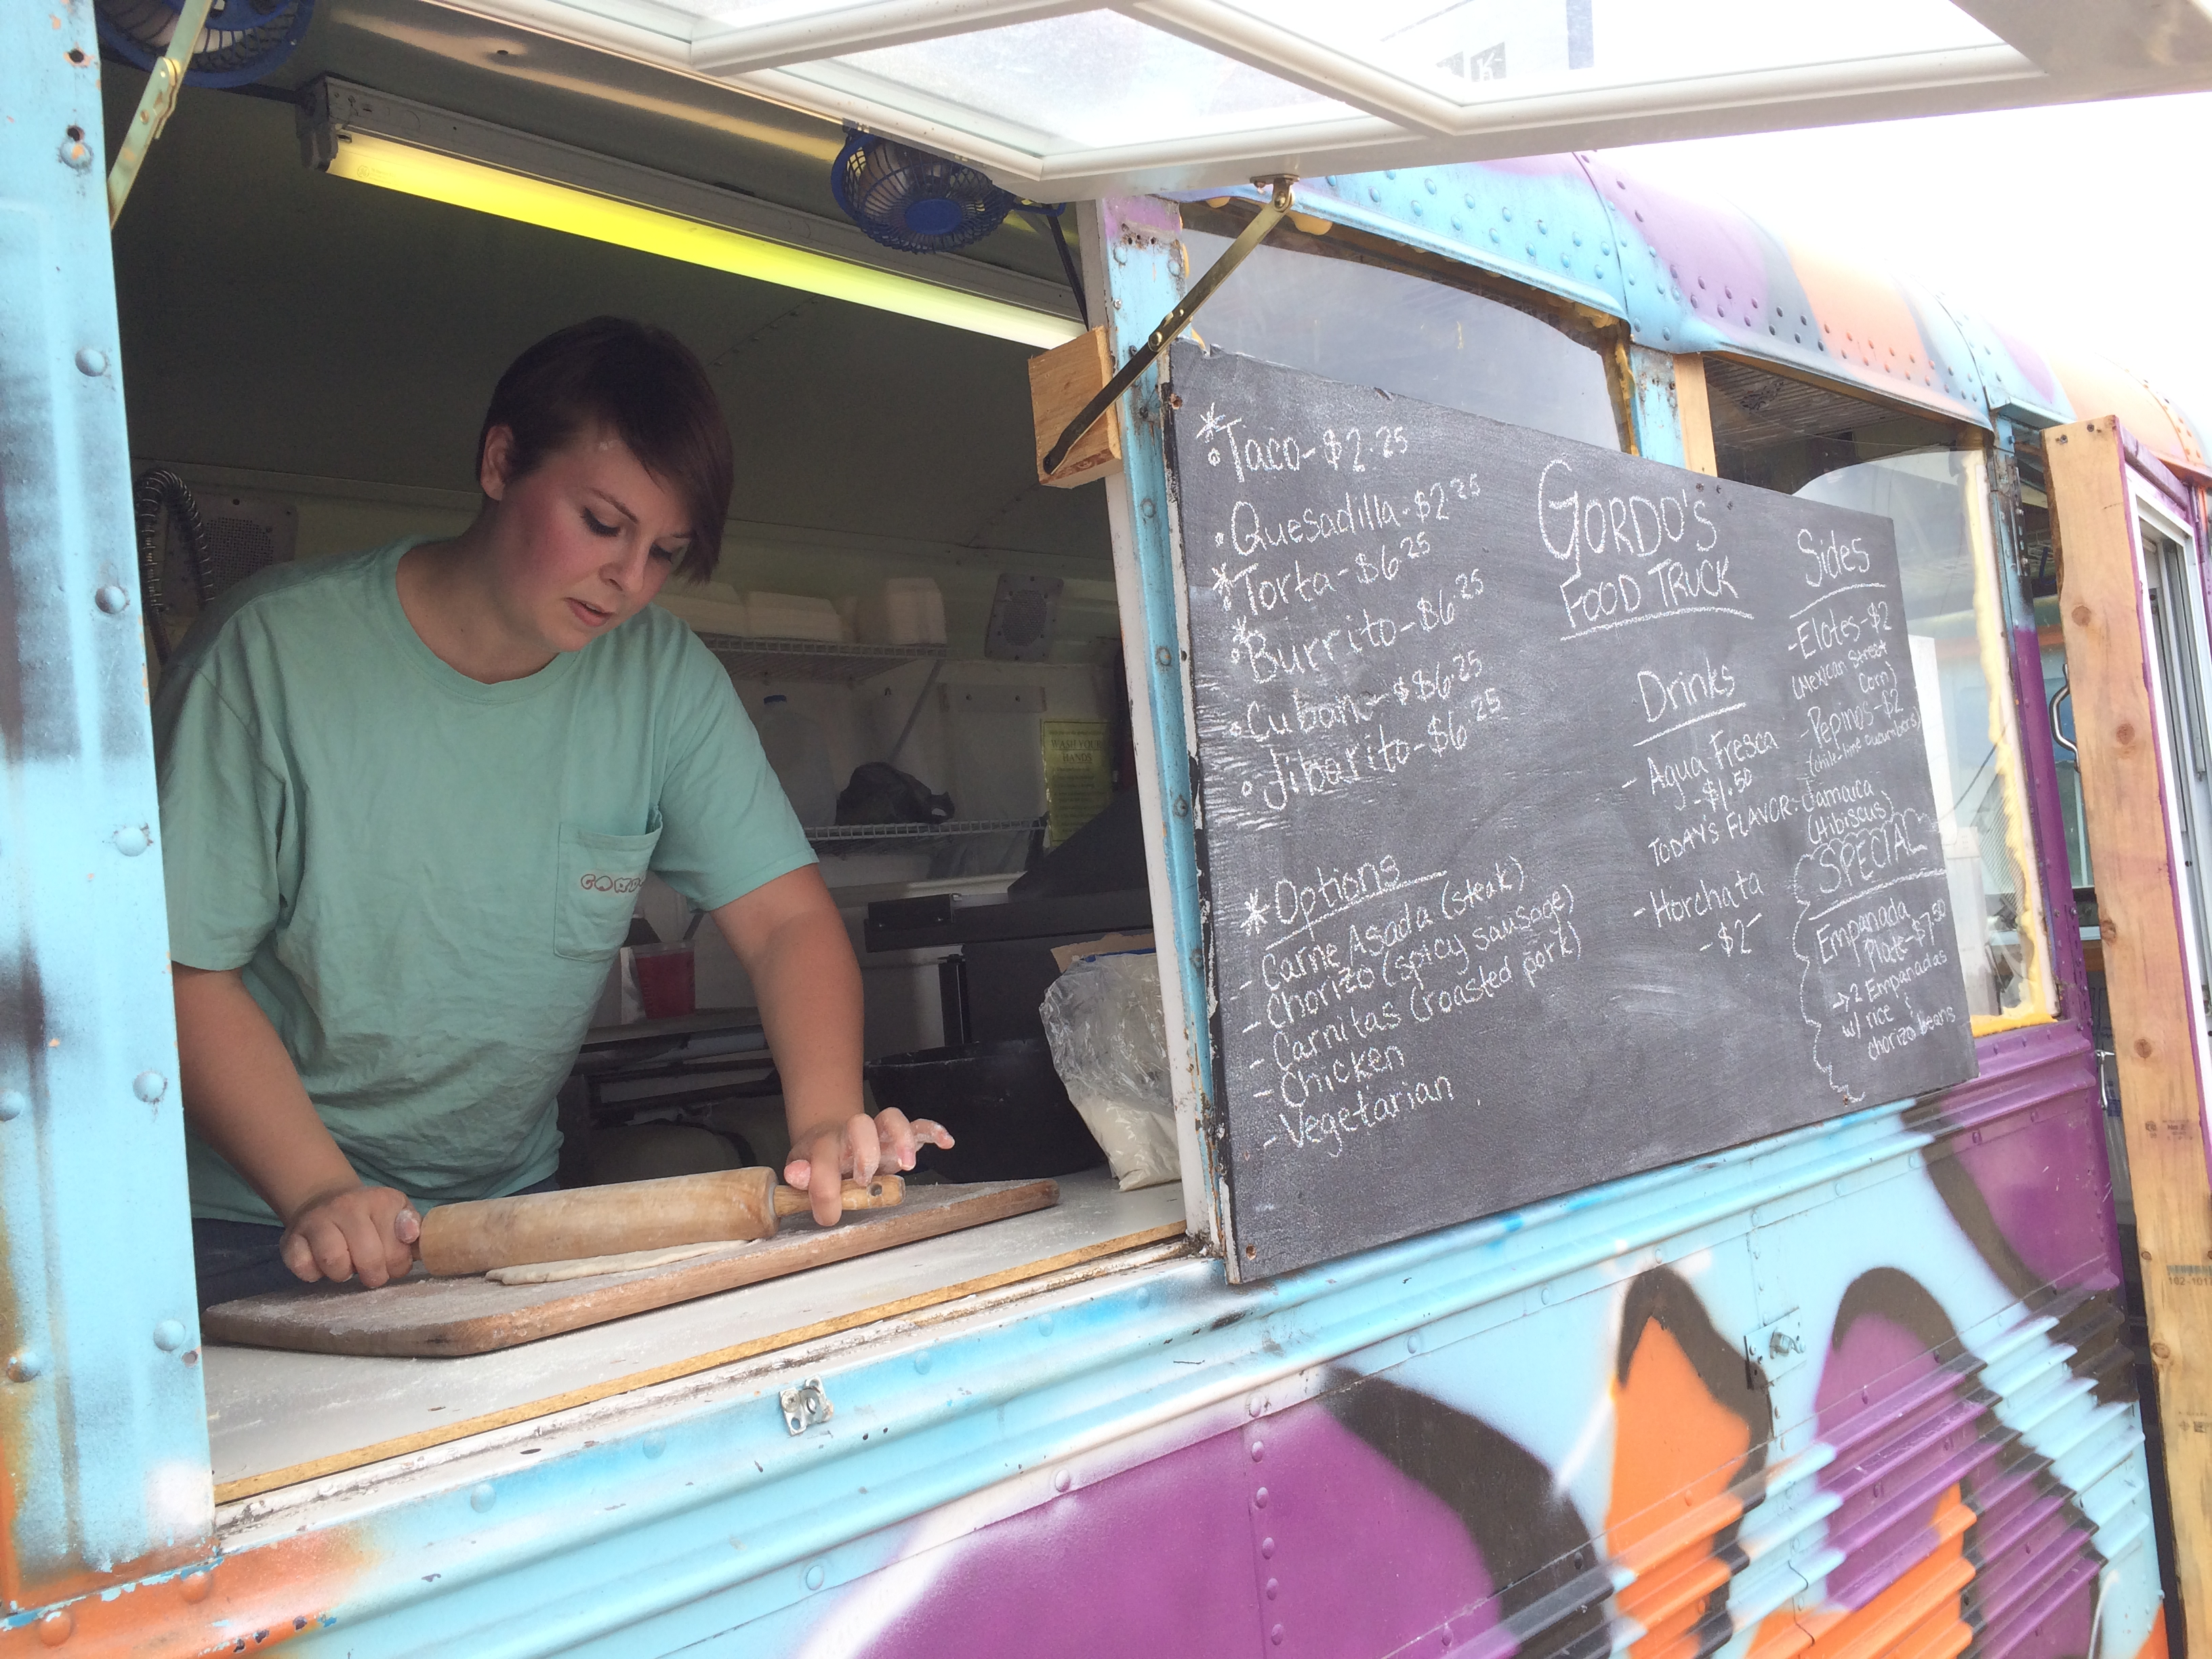 Curbside Eats: 7 Food Trucks in Wisconsin